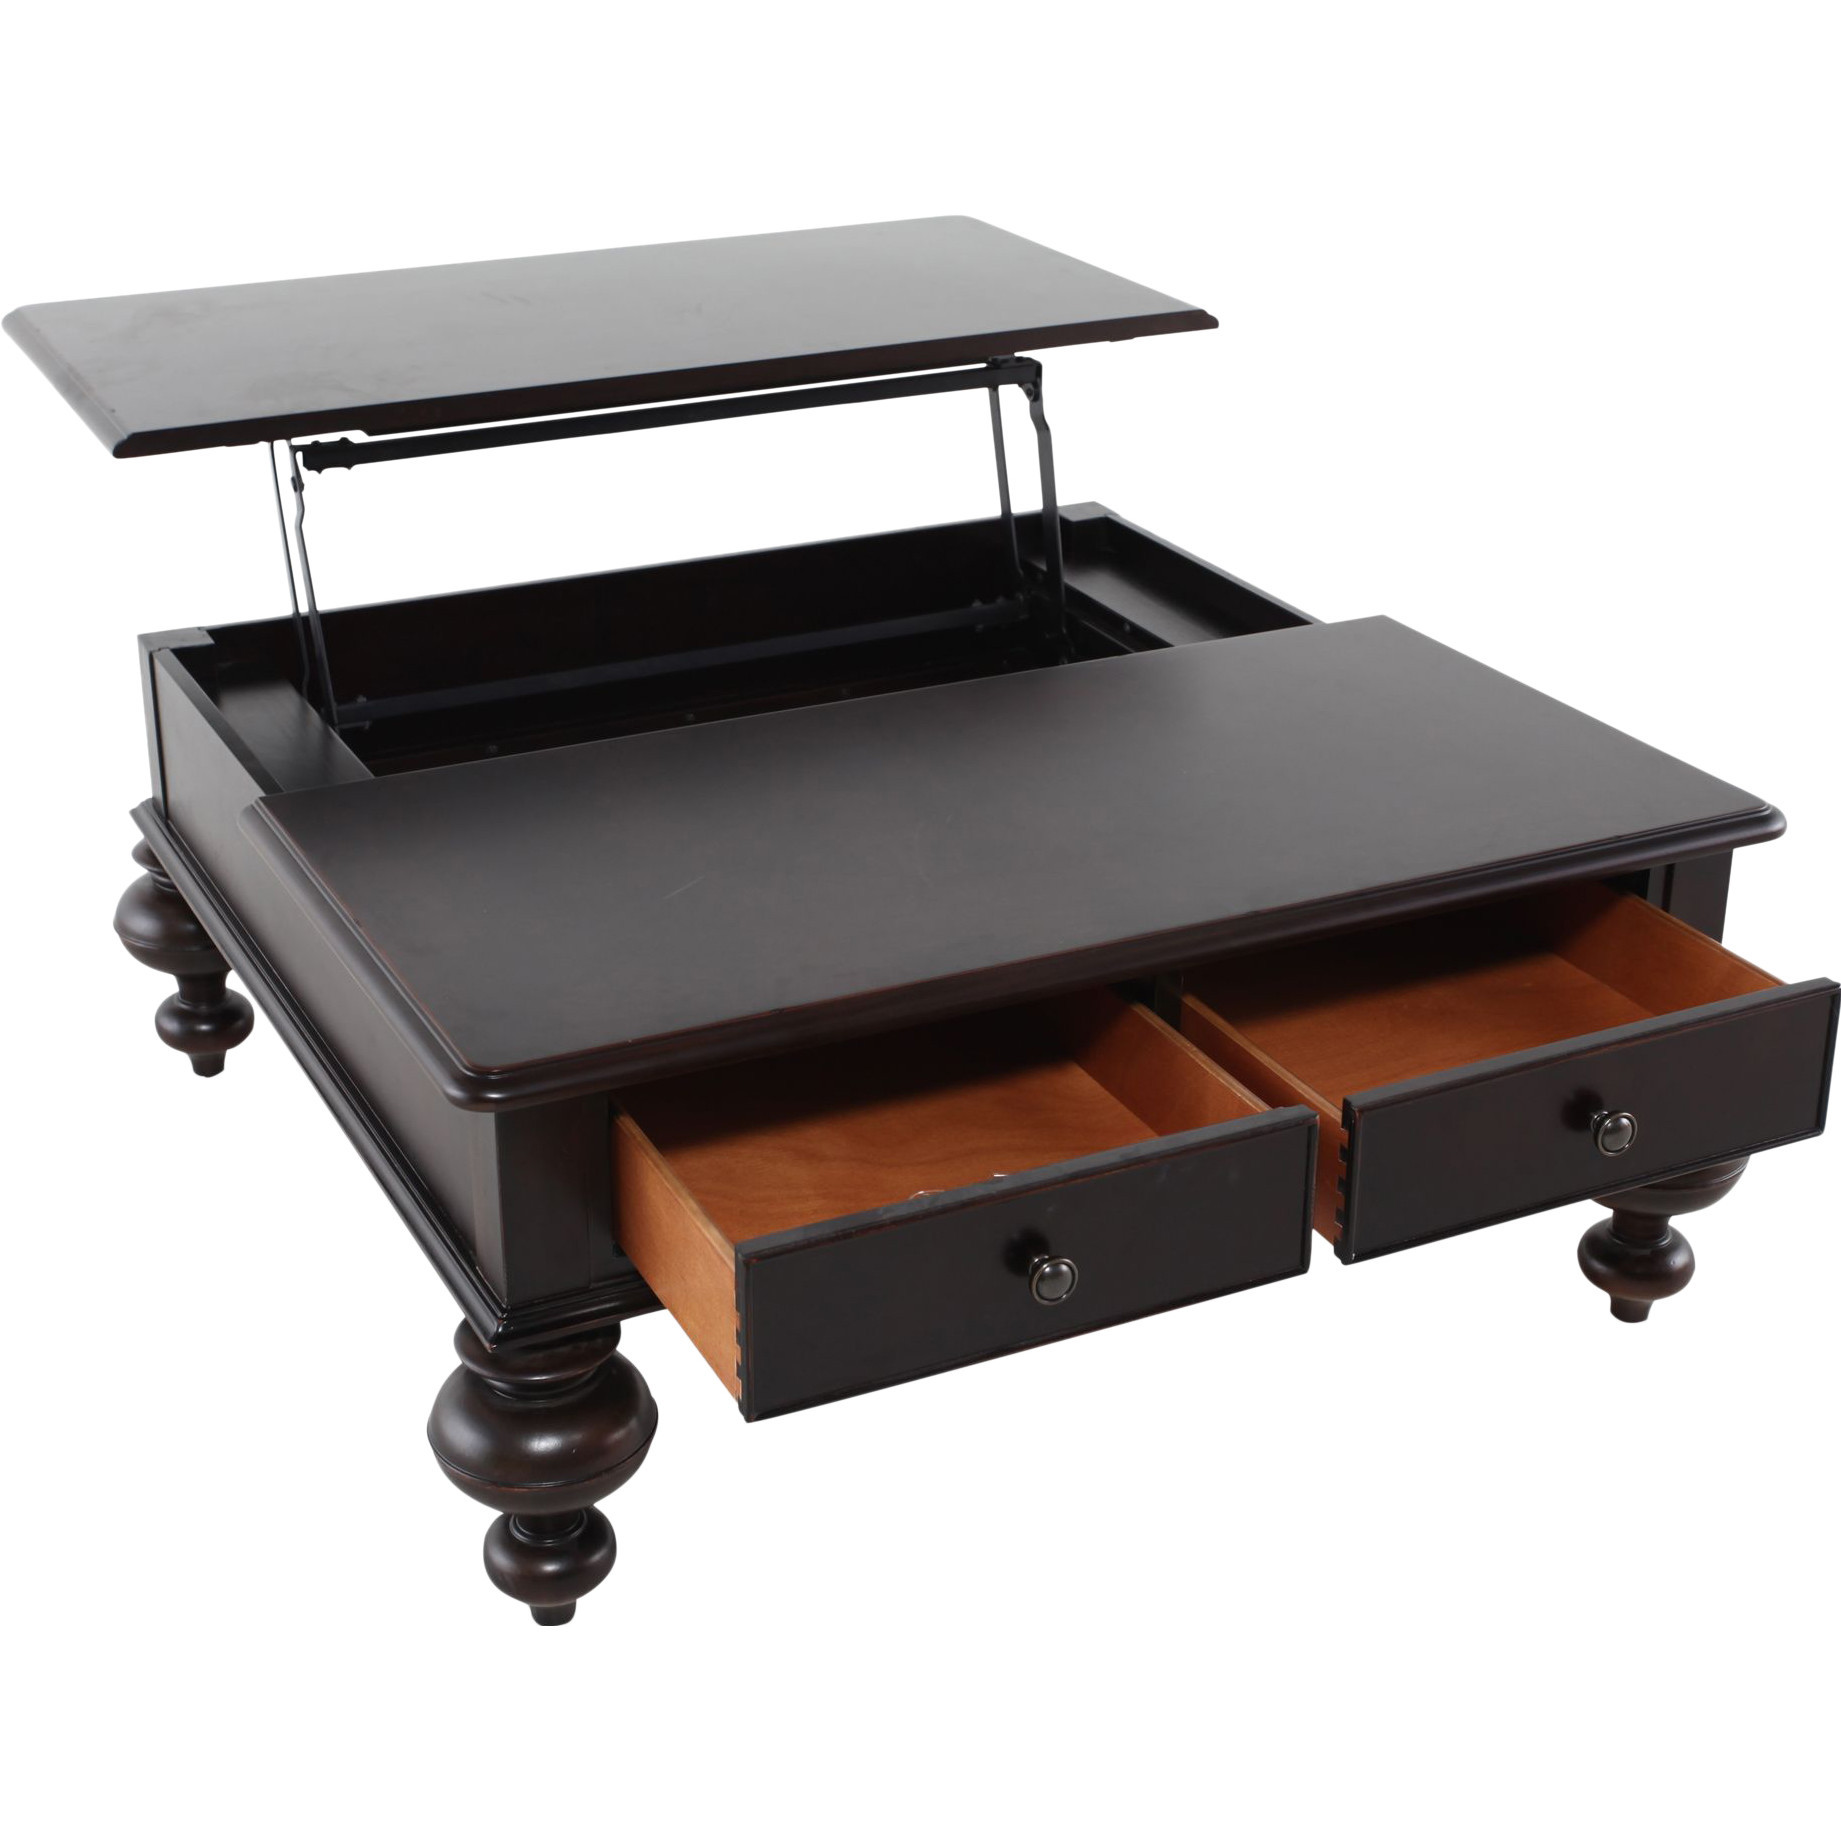 Best ideas about Coffee Table Lift Top . Save or Pin Wildon Home Paula Deen Home Put Your Feet Up Coffee Now.